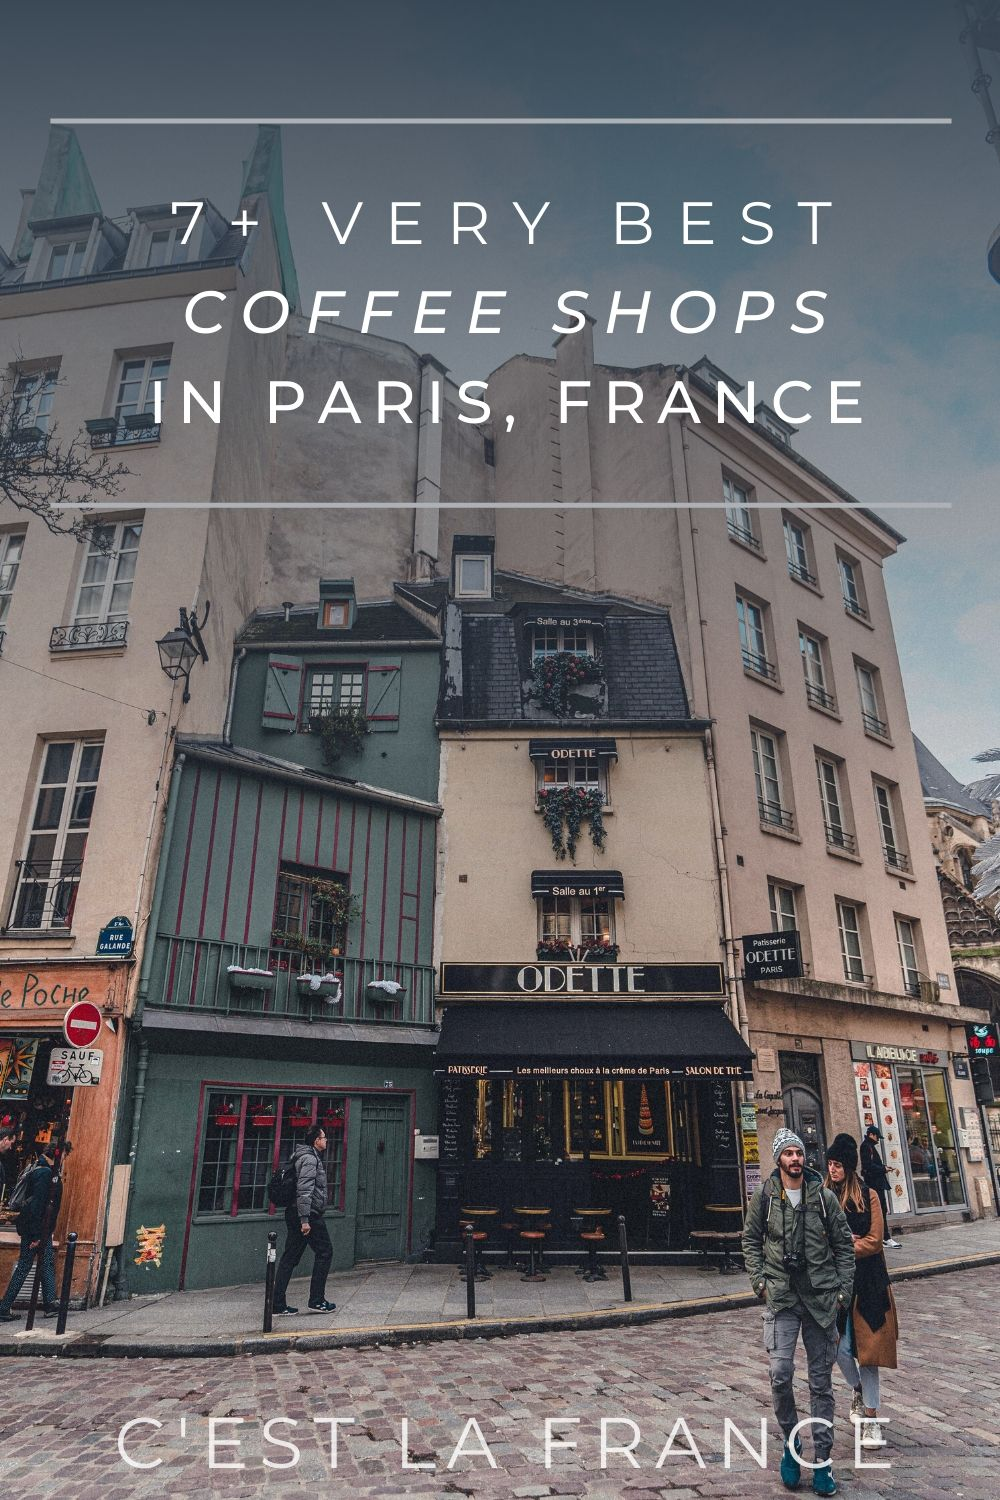 7+ very best coffee shops in paris, france. Looking for the best cafes in Paris? Here are some of the top coffee spots in the French capital city!